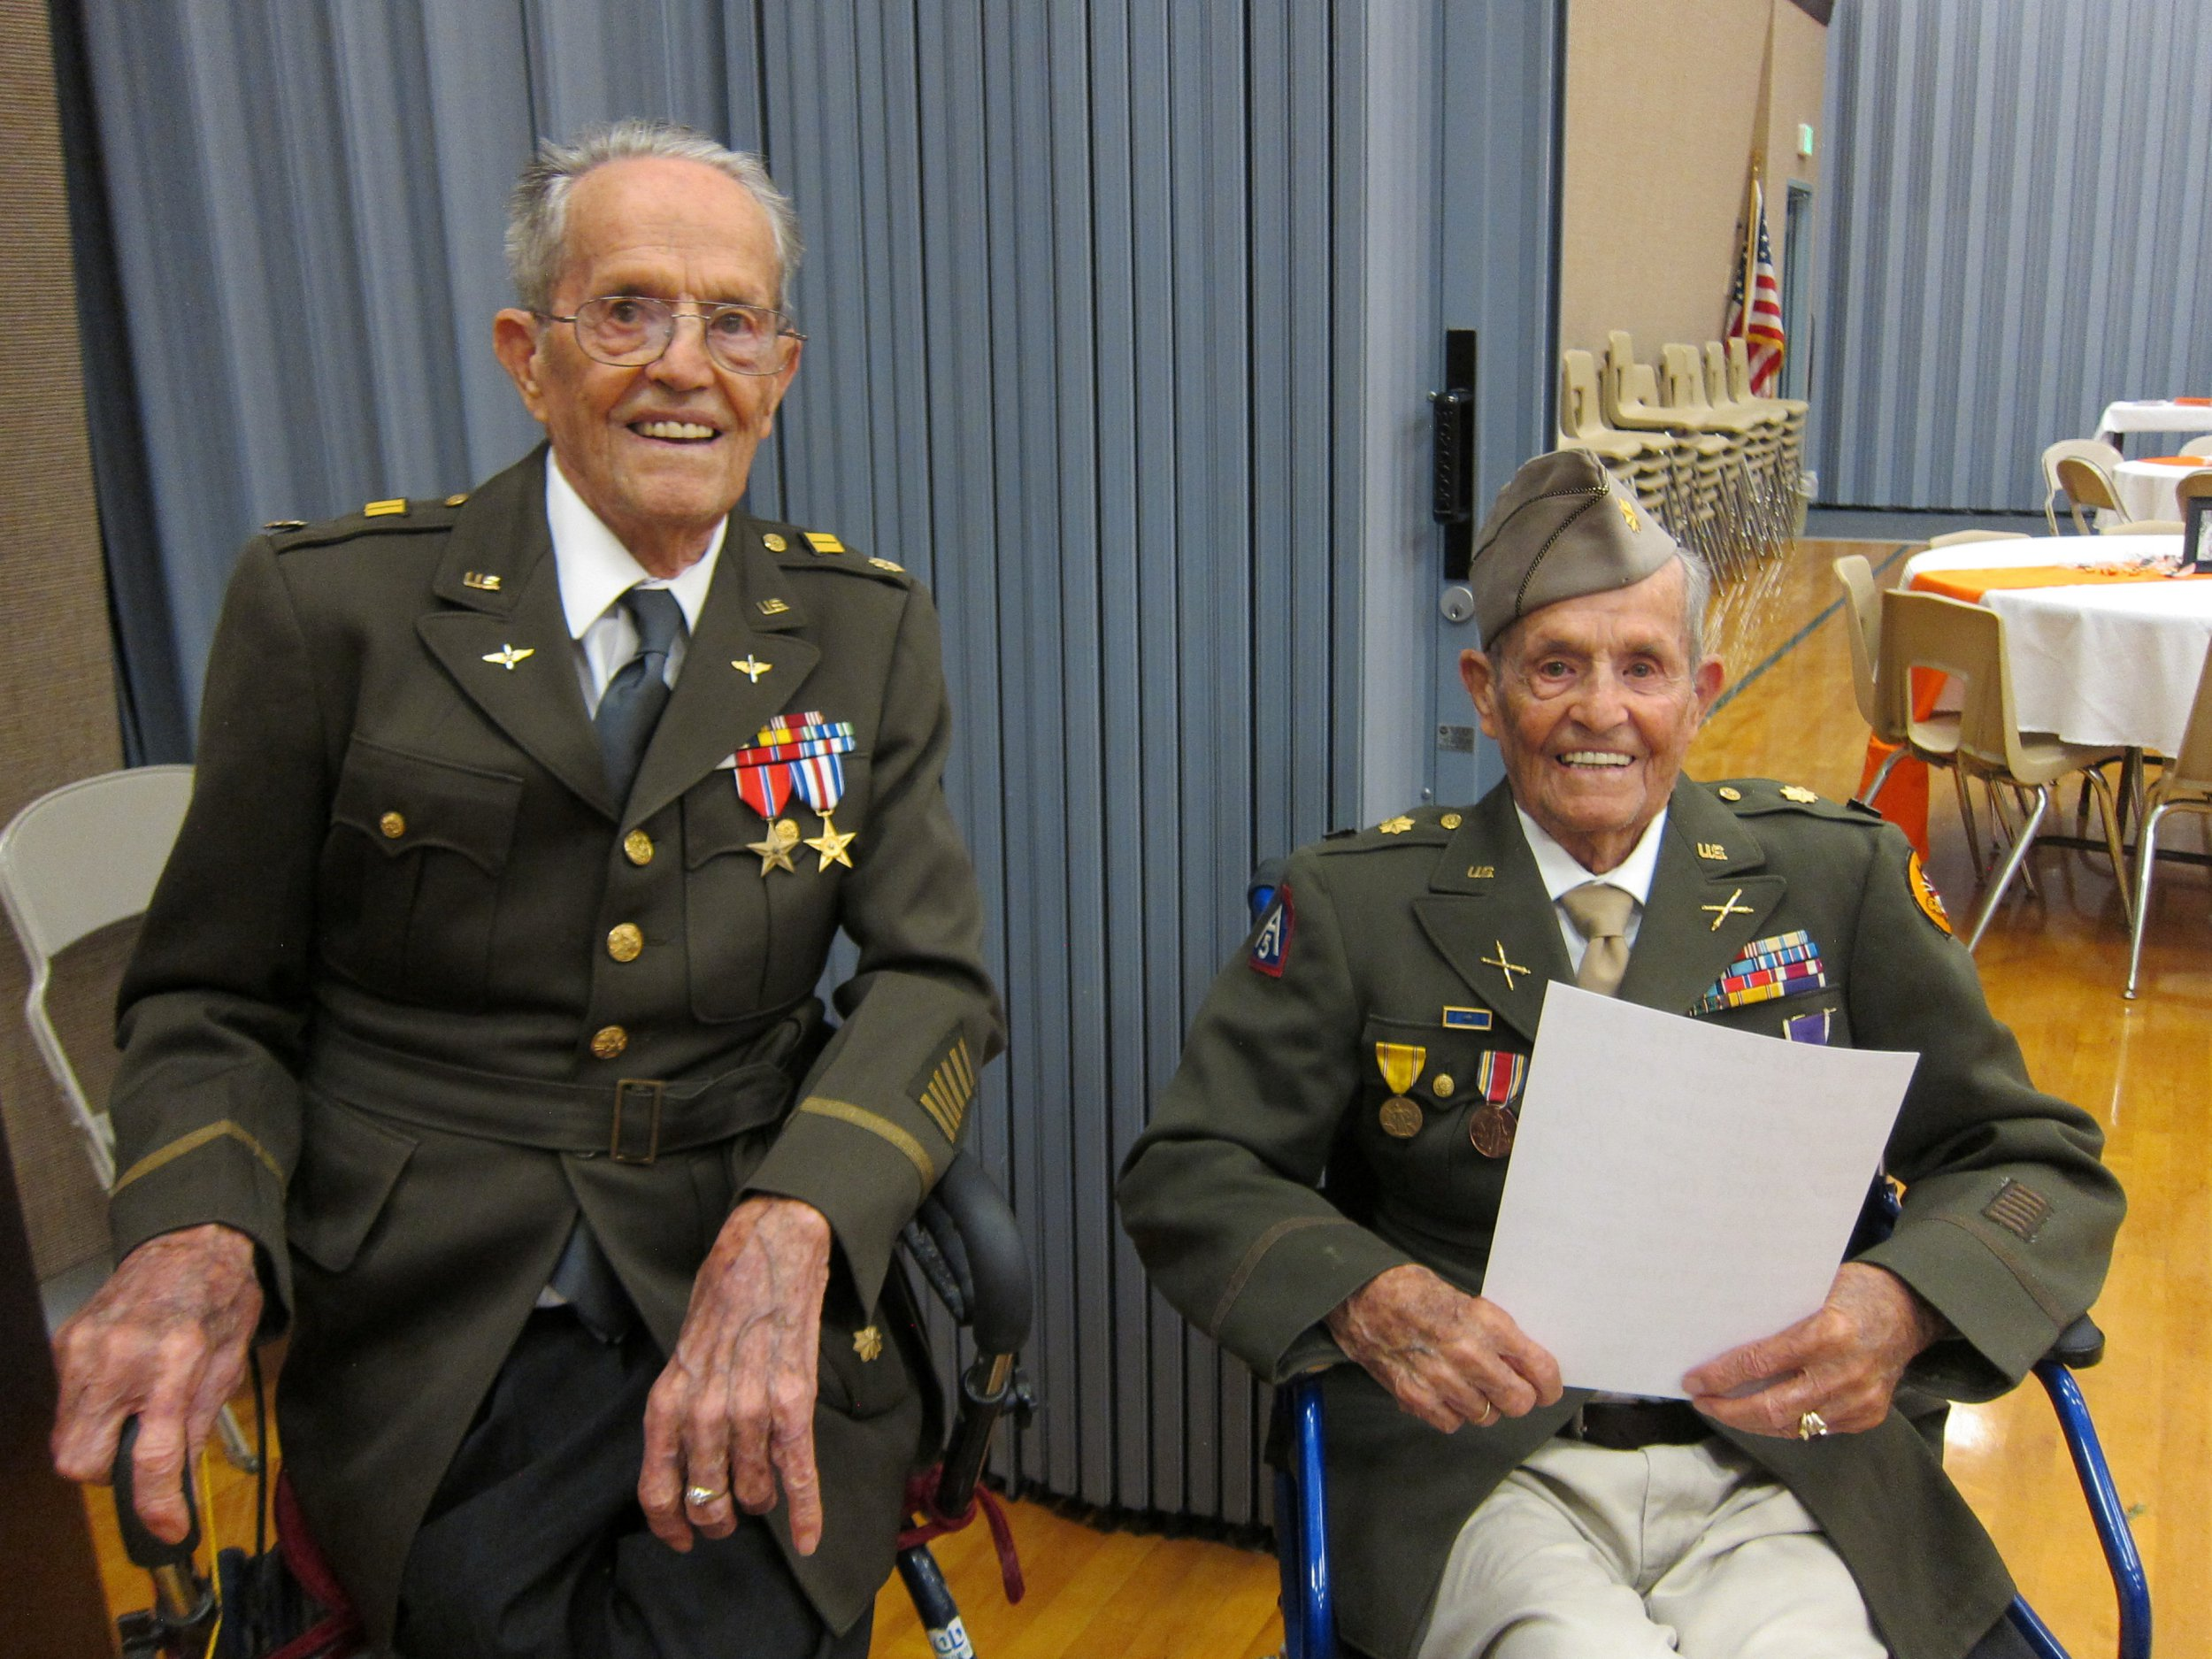 """The 105-year-old Henderson twins, Boyd and Ralph, in their military uniforms. They put their longevity down to their teetotal lifestyle.Pocatello, Idaho. September 6 2018. See story NYTWIN . Identical twin brothers have turned 100 and put the secret of their longevity down to a healthy life of abstinence - with no alcohol, tobacco or caffeine. Centenarians Boyd and Ralph Henderson are """"best friends"""" and have been inseparable since they were born in 1918.The brothers, who both married their high school sweethearts, have 14 children, 71 grandchildren and 128 great-grandchildren between them. Boyd and Ralph, who were born in Arimo, Idaho, USA, fought together during World War II in far flung battlefields of North Africa and Europe."""